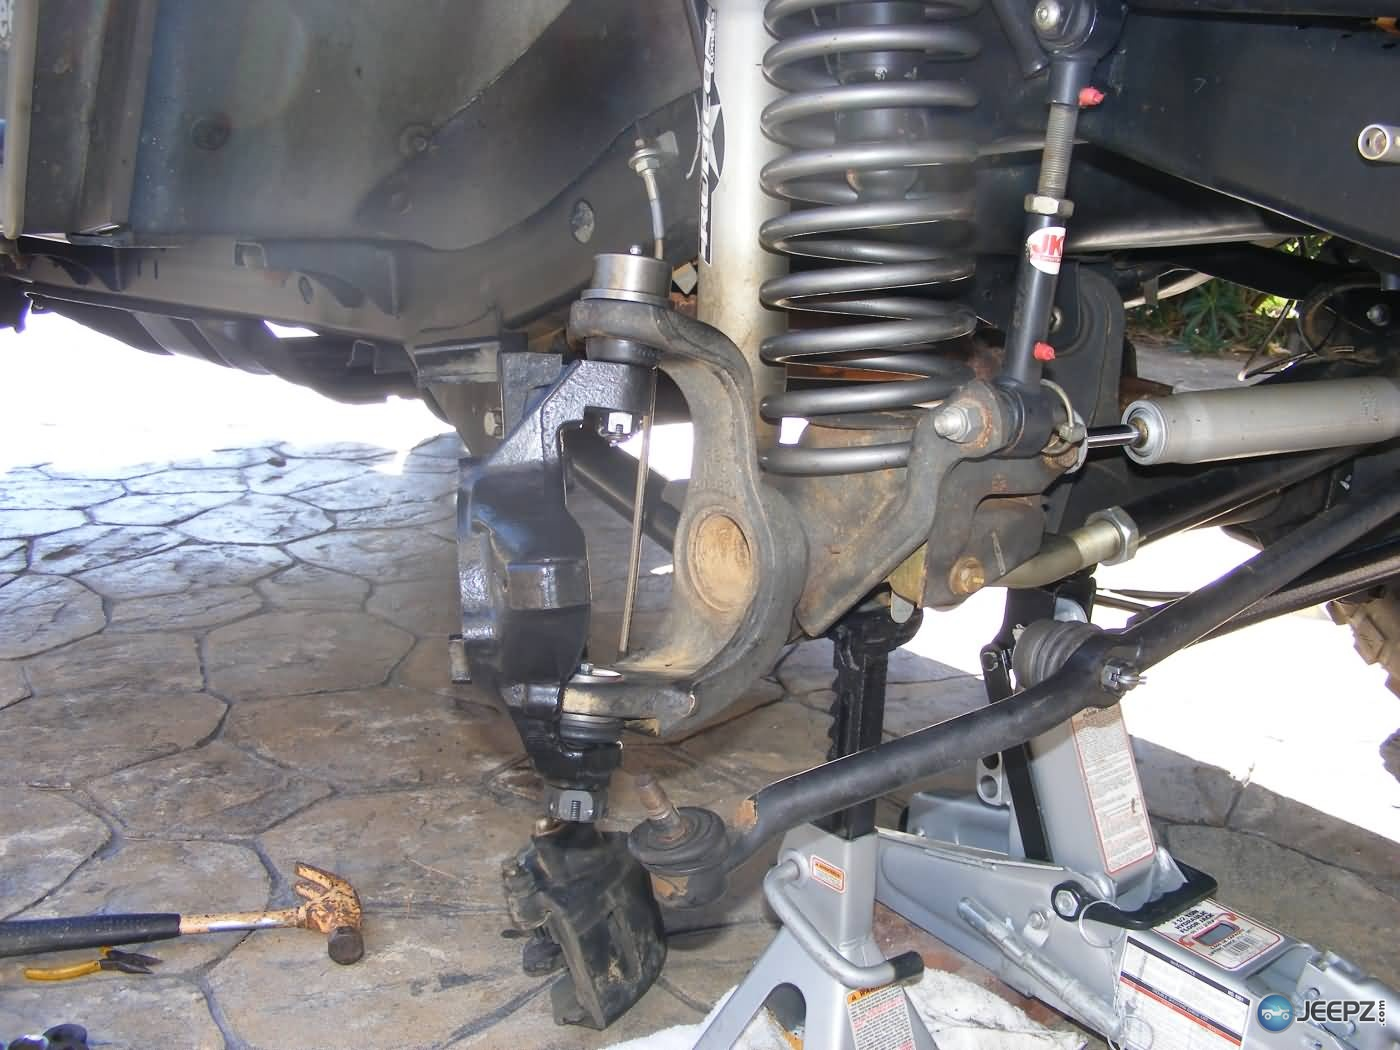 2007 jeep wrangler front suspension diagram rock cycle fill in the blank dodge caravan starter location ford ranger